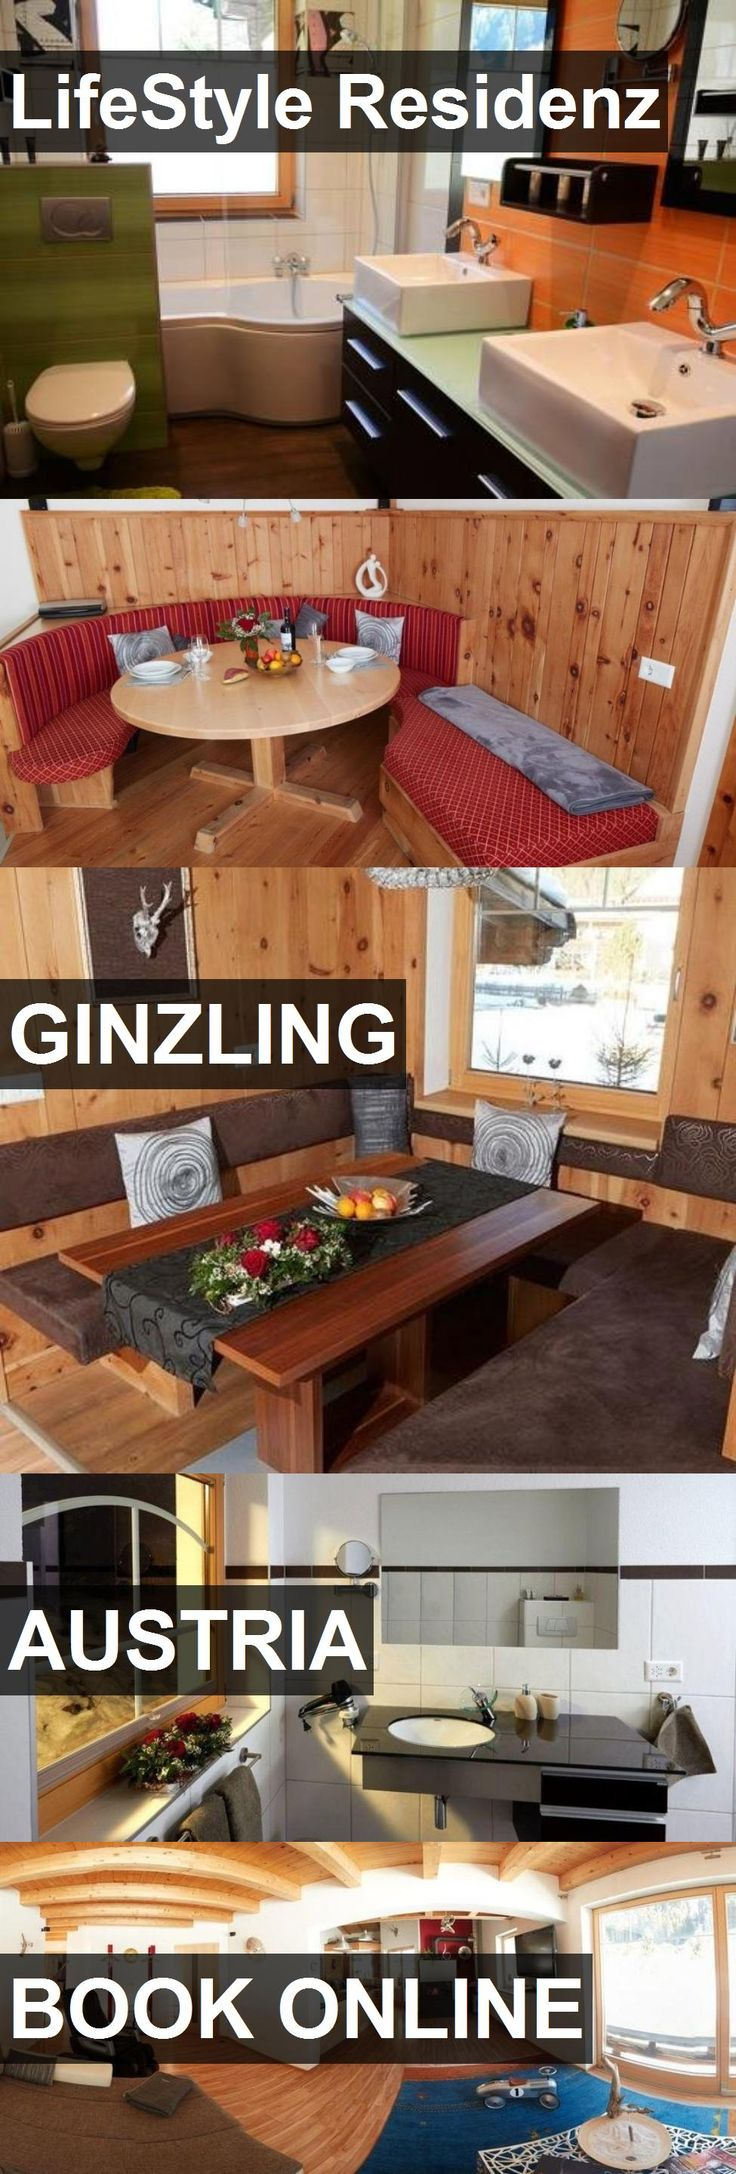 Hotel LifeStyle Residenz in Ginzling, Austria. For more information, photos, reviews and best prices please follow the link. #Austria #Ginzling #travel #vacation #hotel